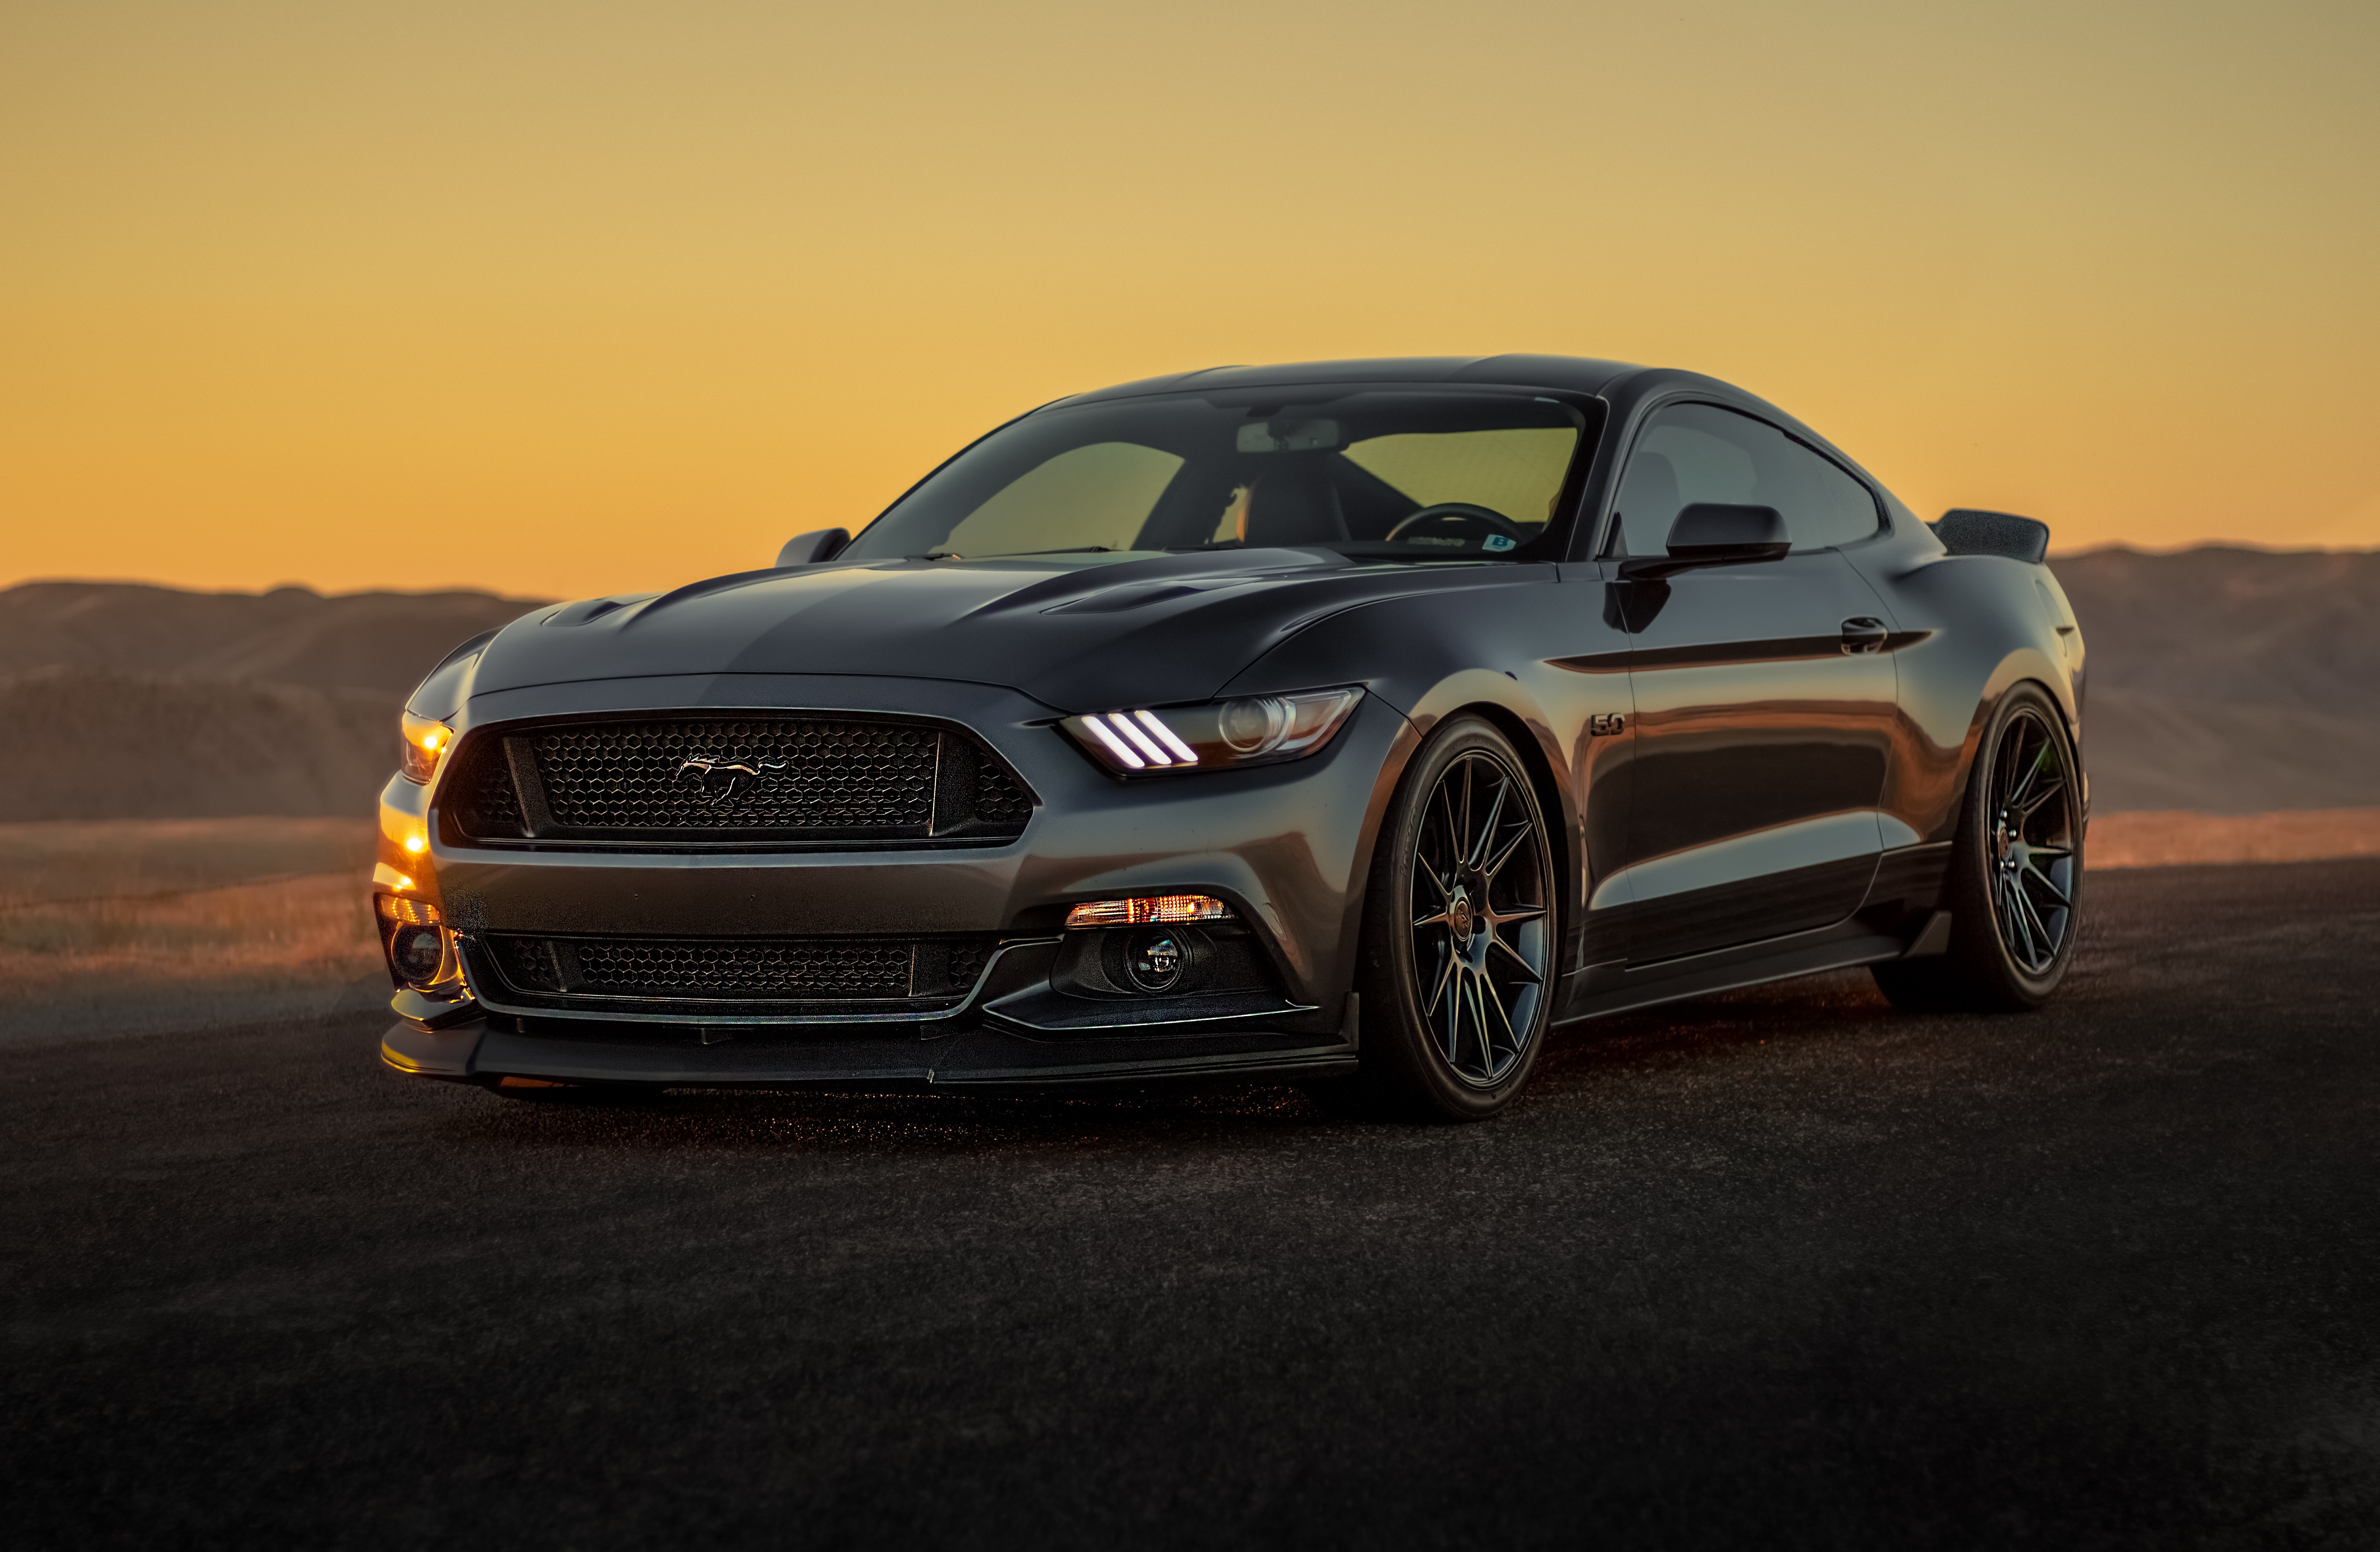 Black Ford Mustang 2019 5k, HD Cars, 4k Wallpapers, Images, Backgrounds, Photos and Pictures